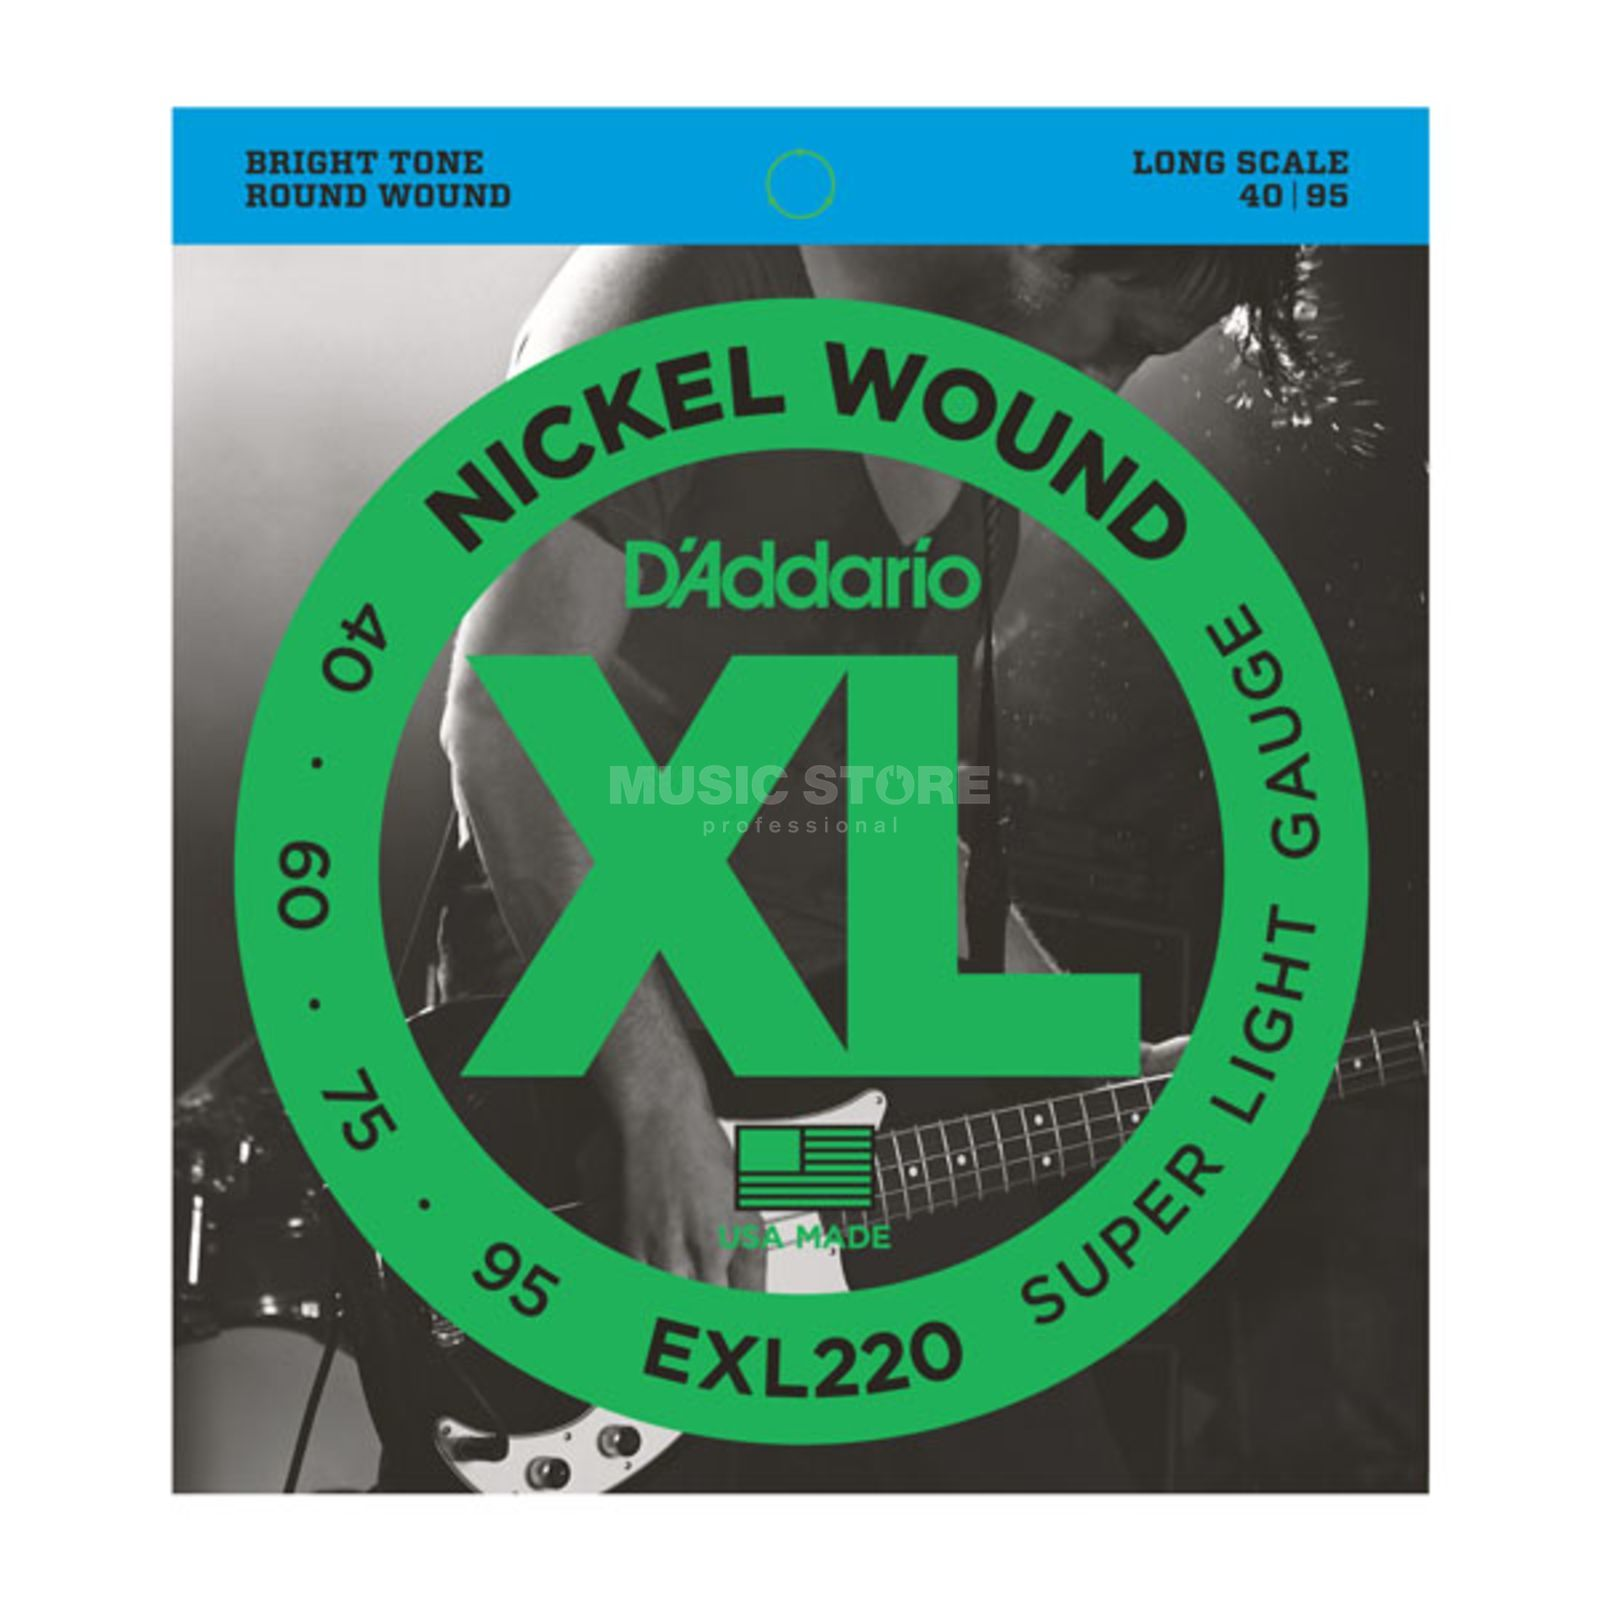 D'Addario Bass Strings XL Nickel 40-095 40-60-75-95, EXL220 Zdjęcie produktu